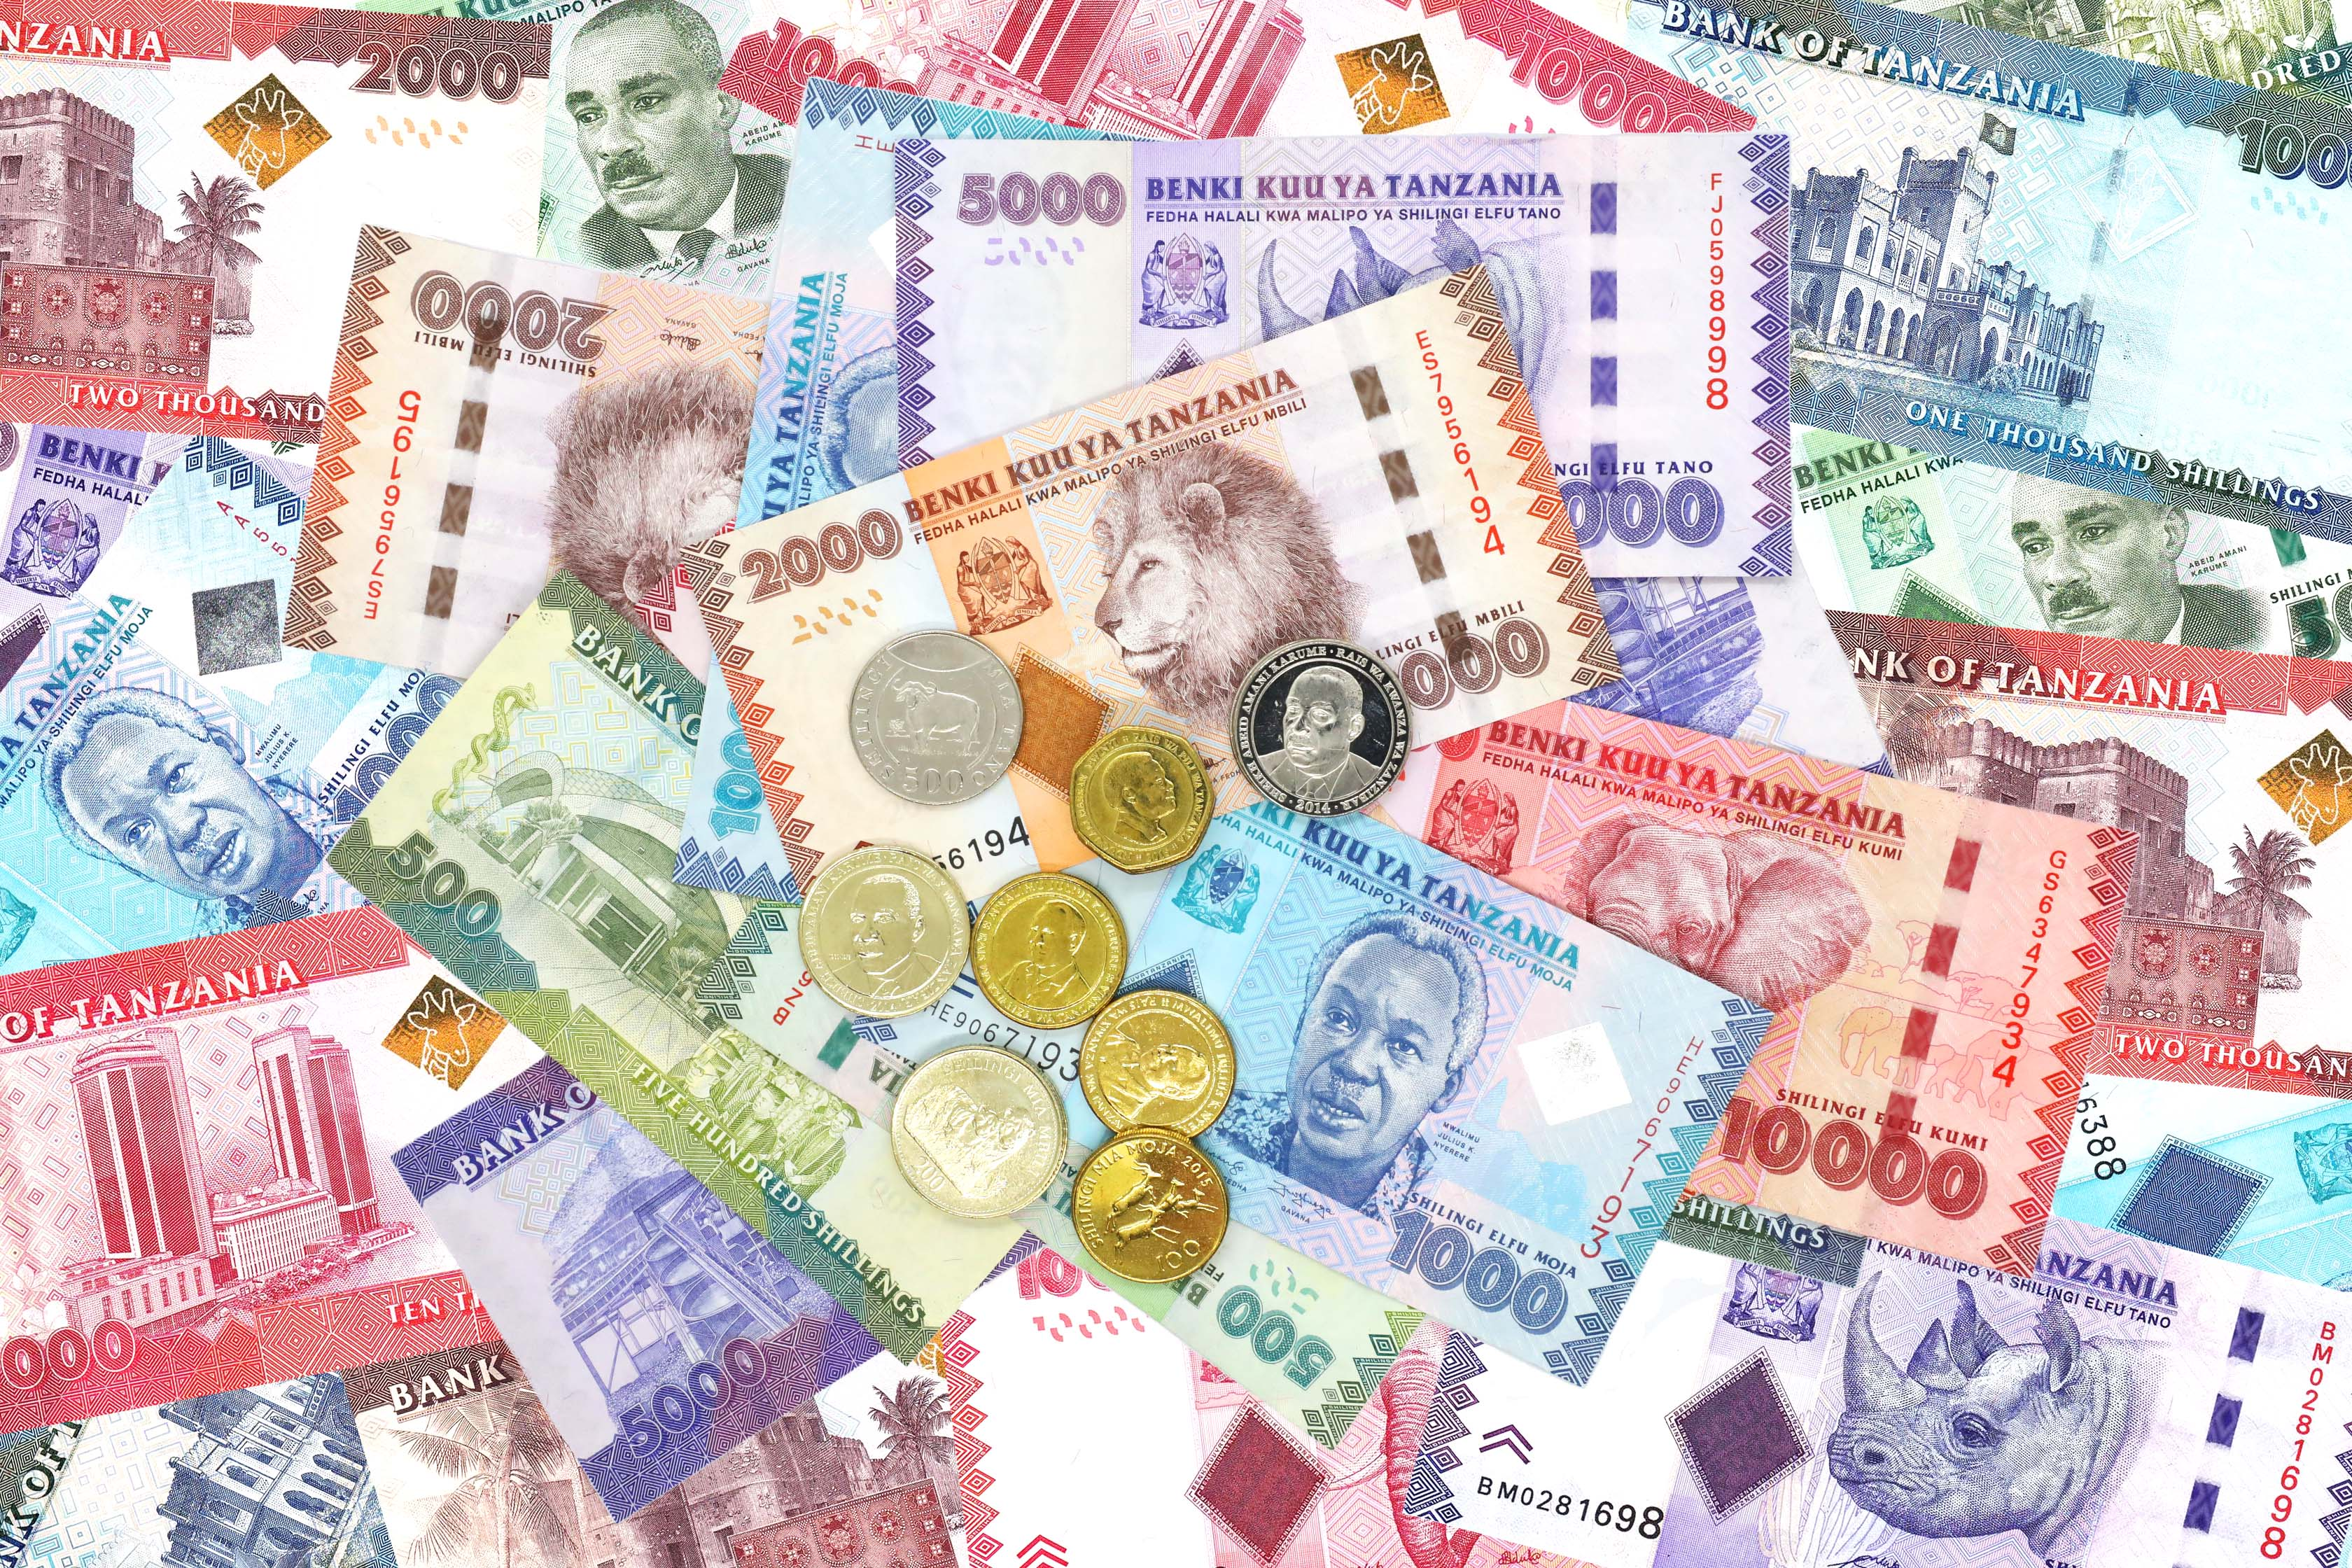 Tanzania shilling remains stable, thanks to gold inflows